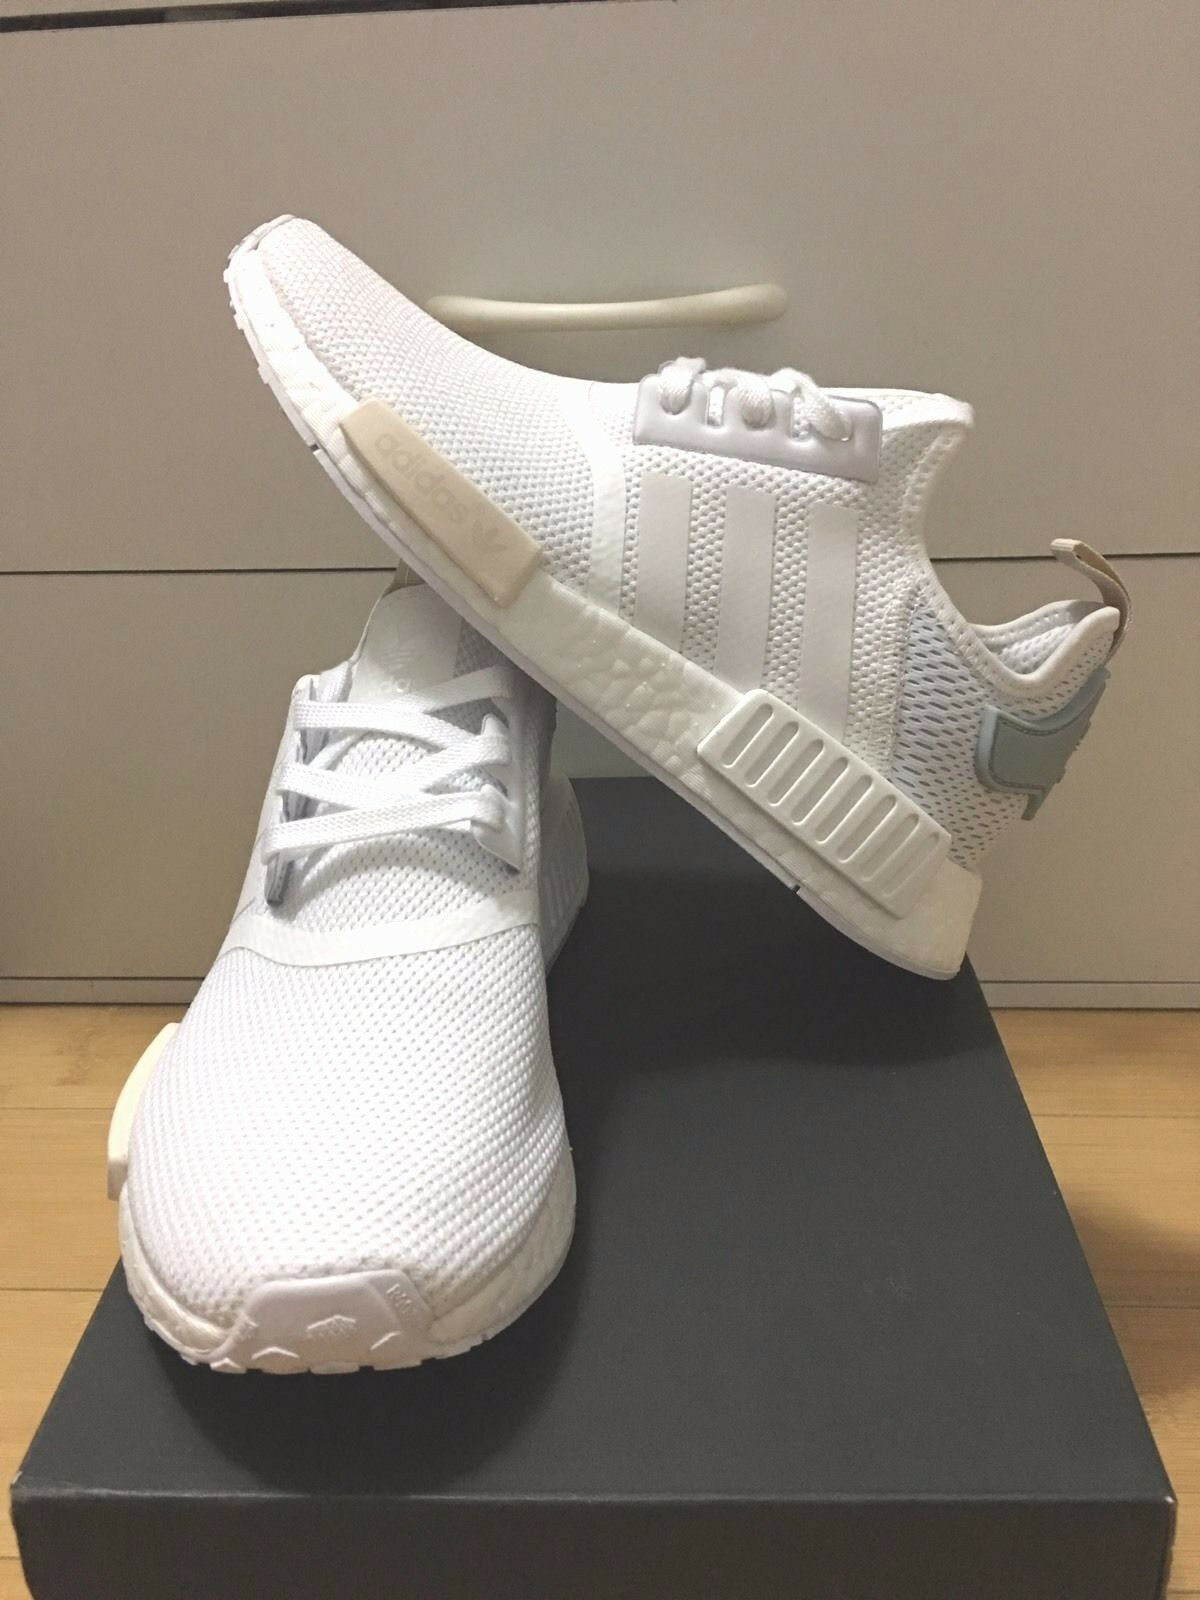 Adidas NMD R_1 White Tactile Green Cream BA7752 Women 7.5-9.5US100%AUTHENTIC